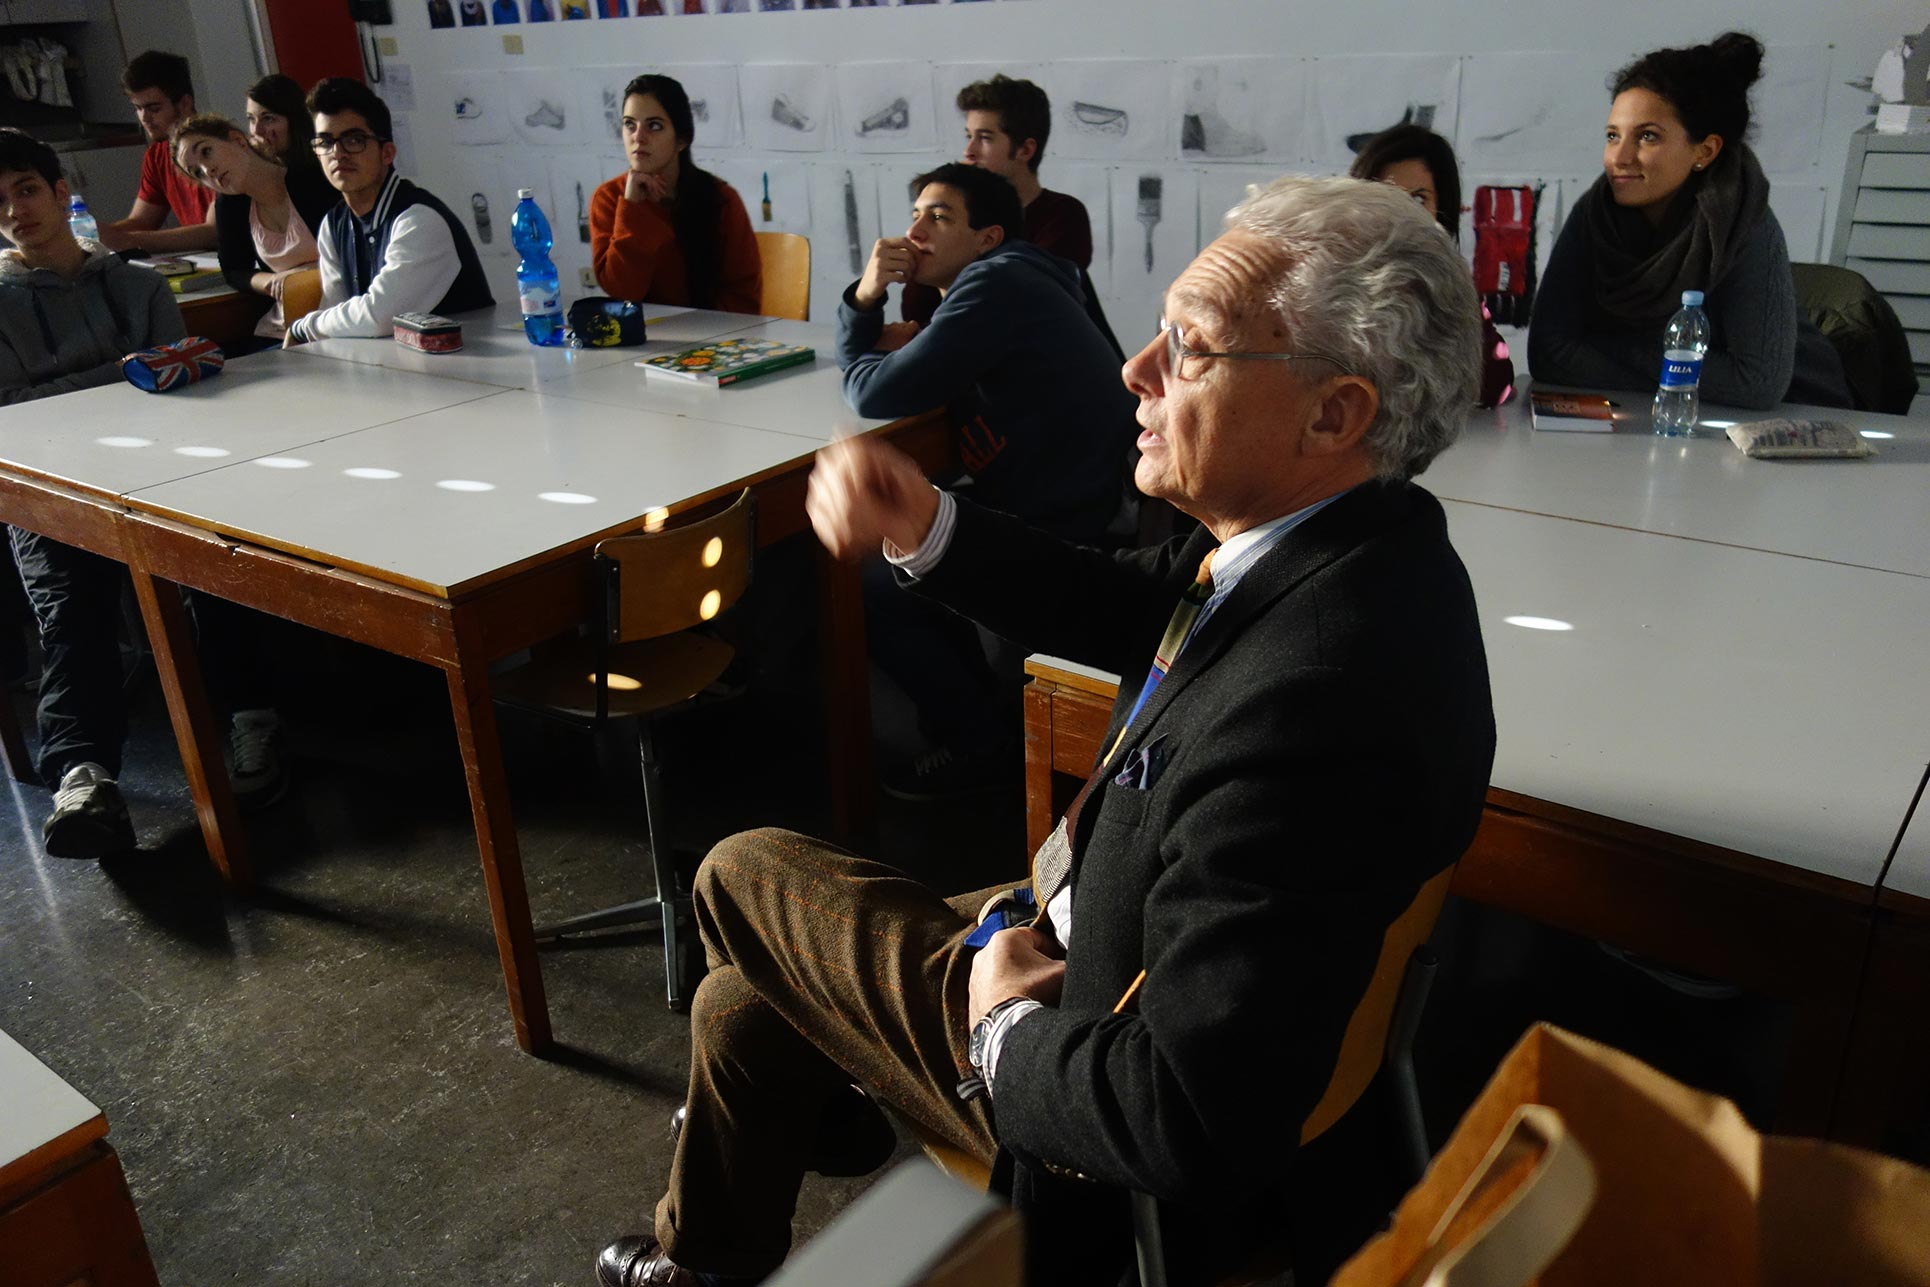 Nanni Albera, architect discussing the pupil's architecture proposals (Photo: Barbara Fässler)